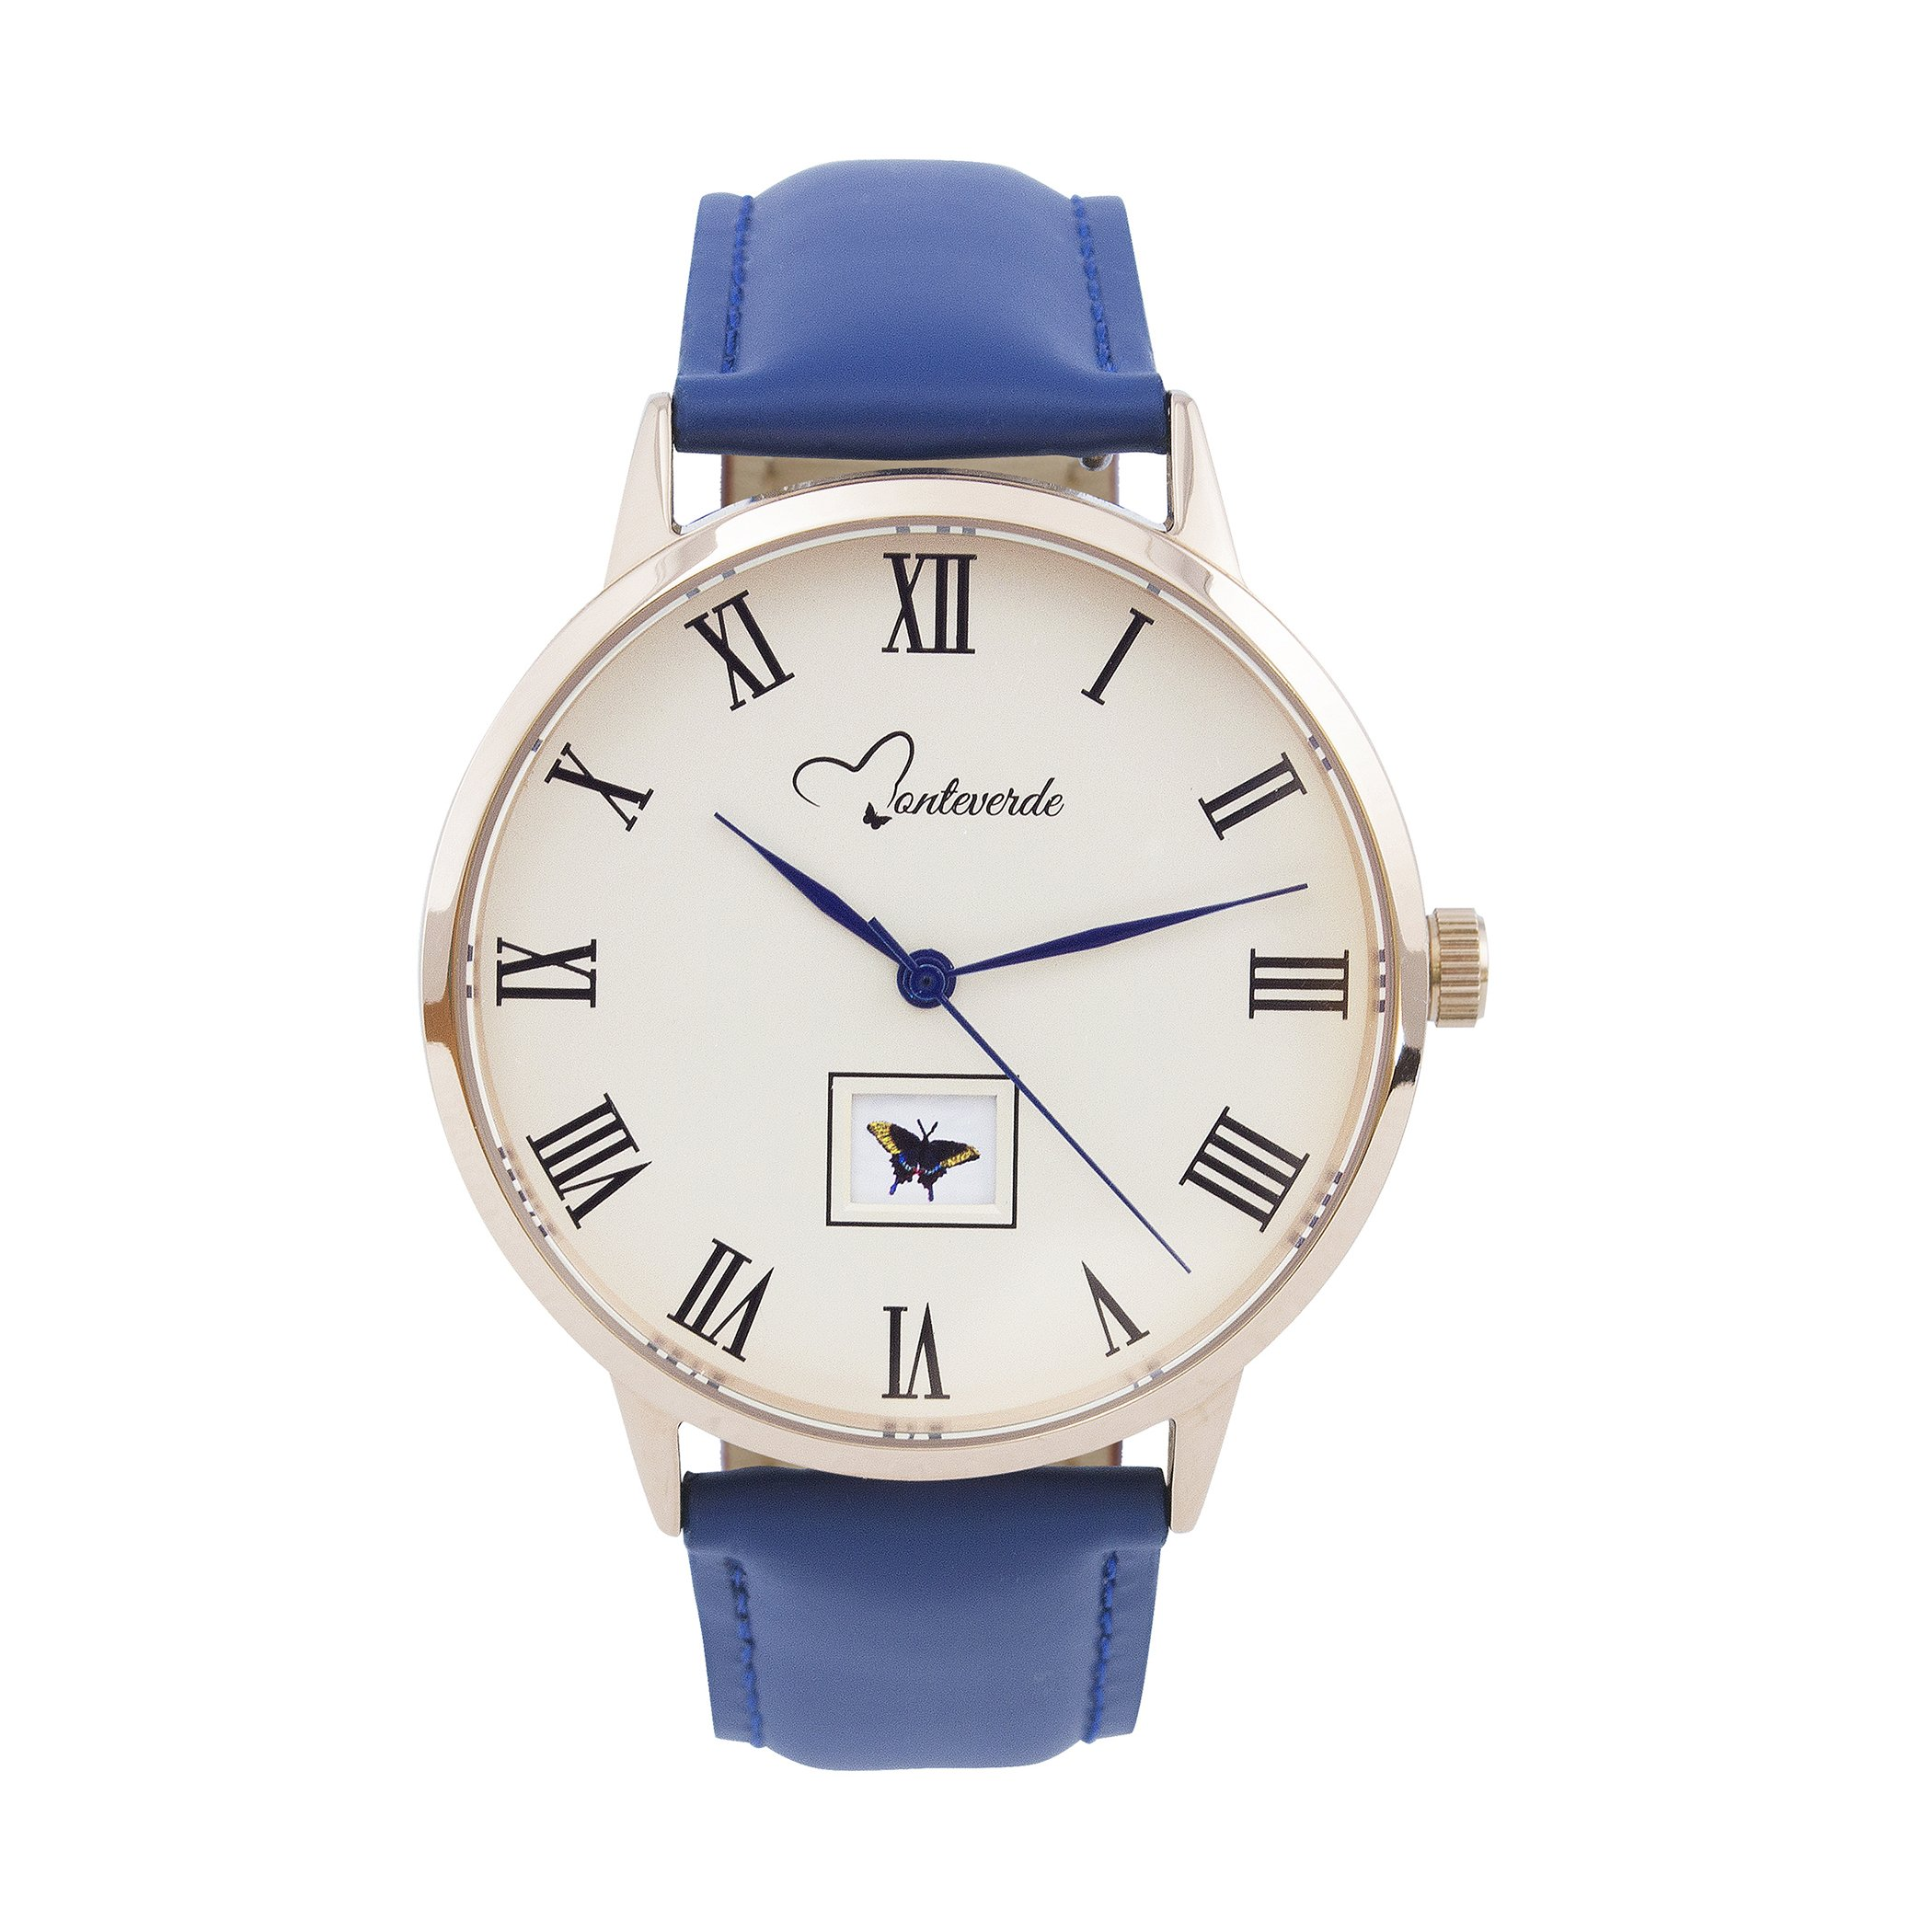 Monteverde Unisex Watch - Natura Collection -Butterfly edition - 38mm Rose Gold Stainless Steel case with genuine blue leather strap - Enjoy a new Butterfly every morning as a gift from nature.